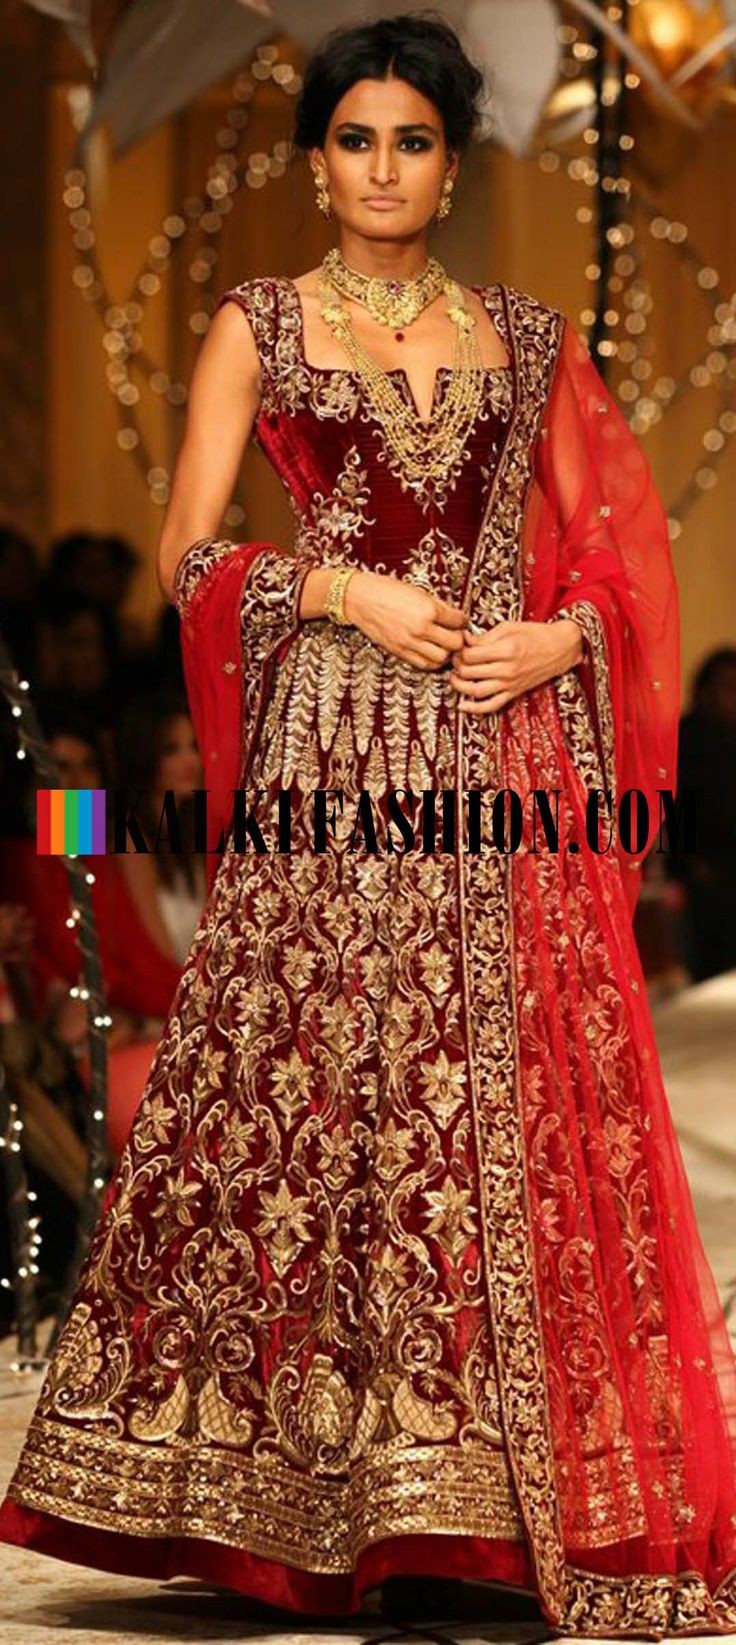 Indian bride dresses pictures